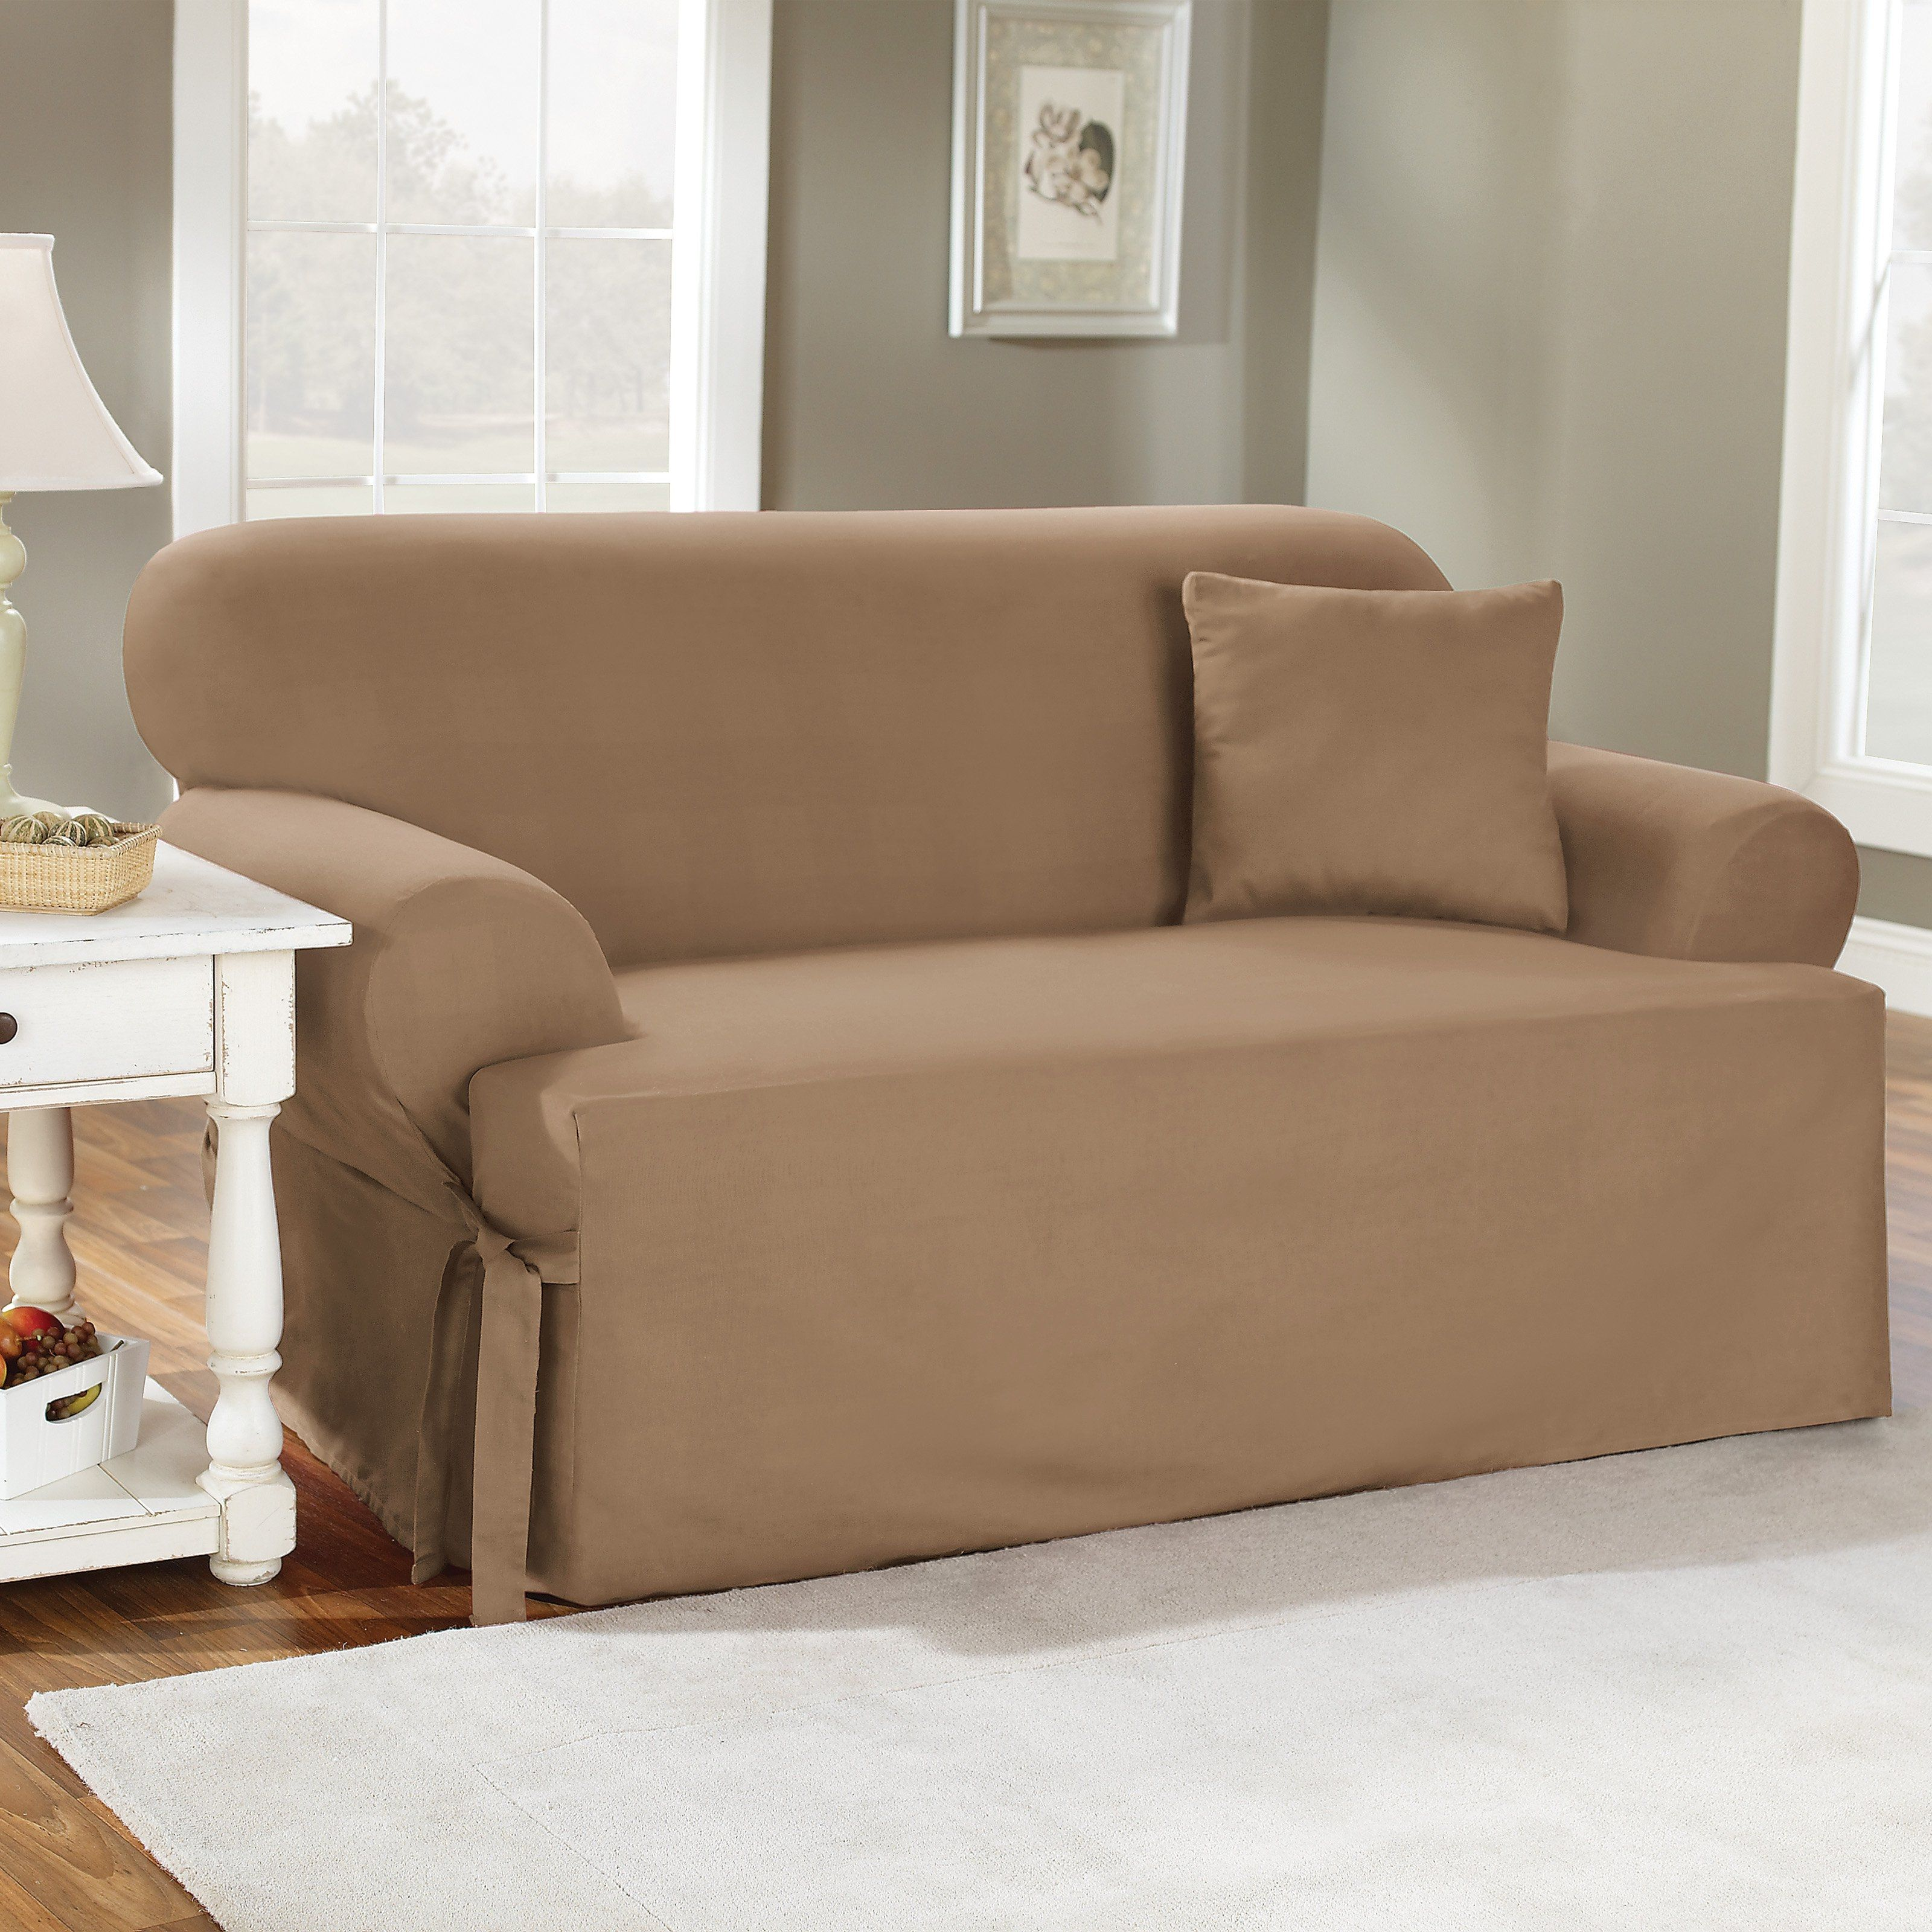 One Piece Sectional Couch Covers | http://ml2r.com | Pinterest